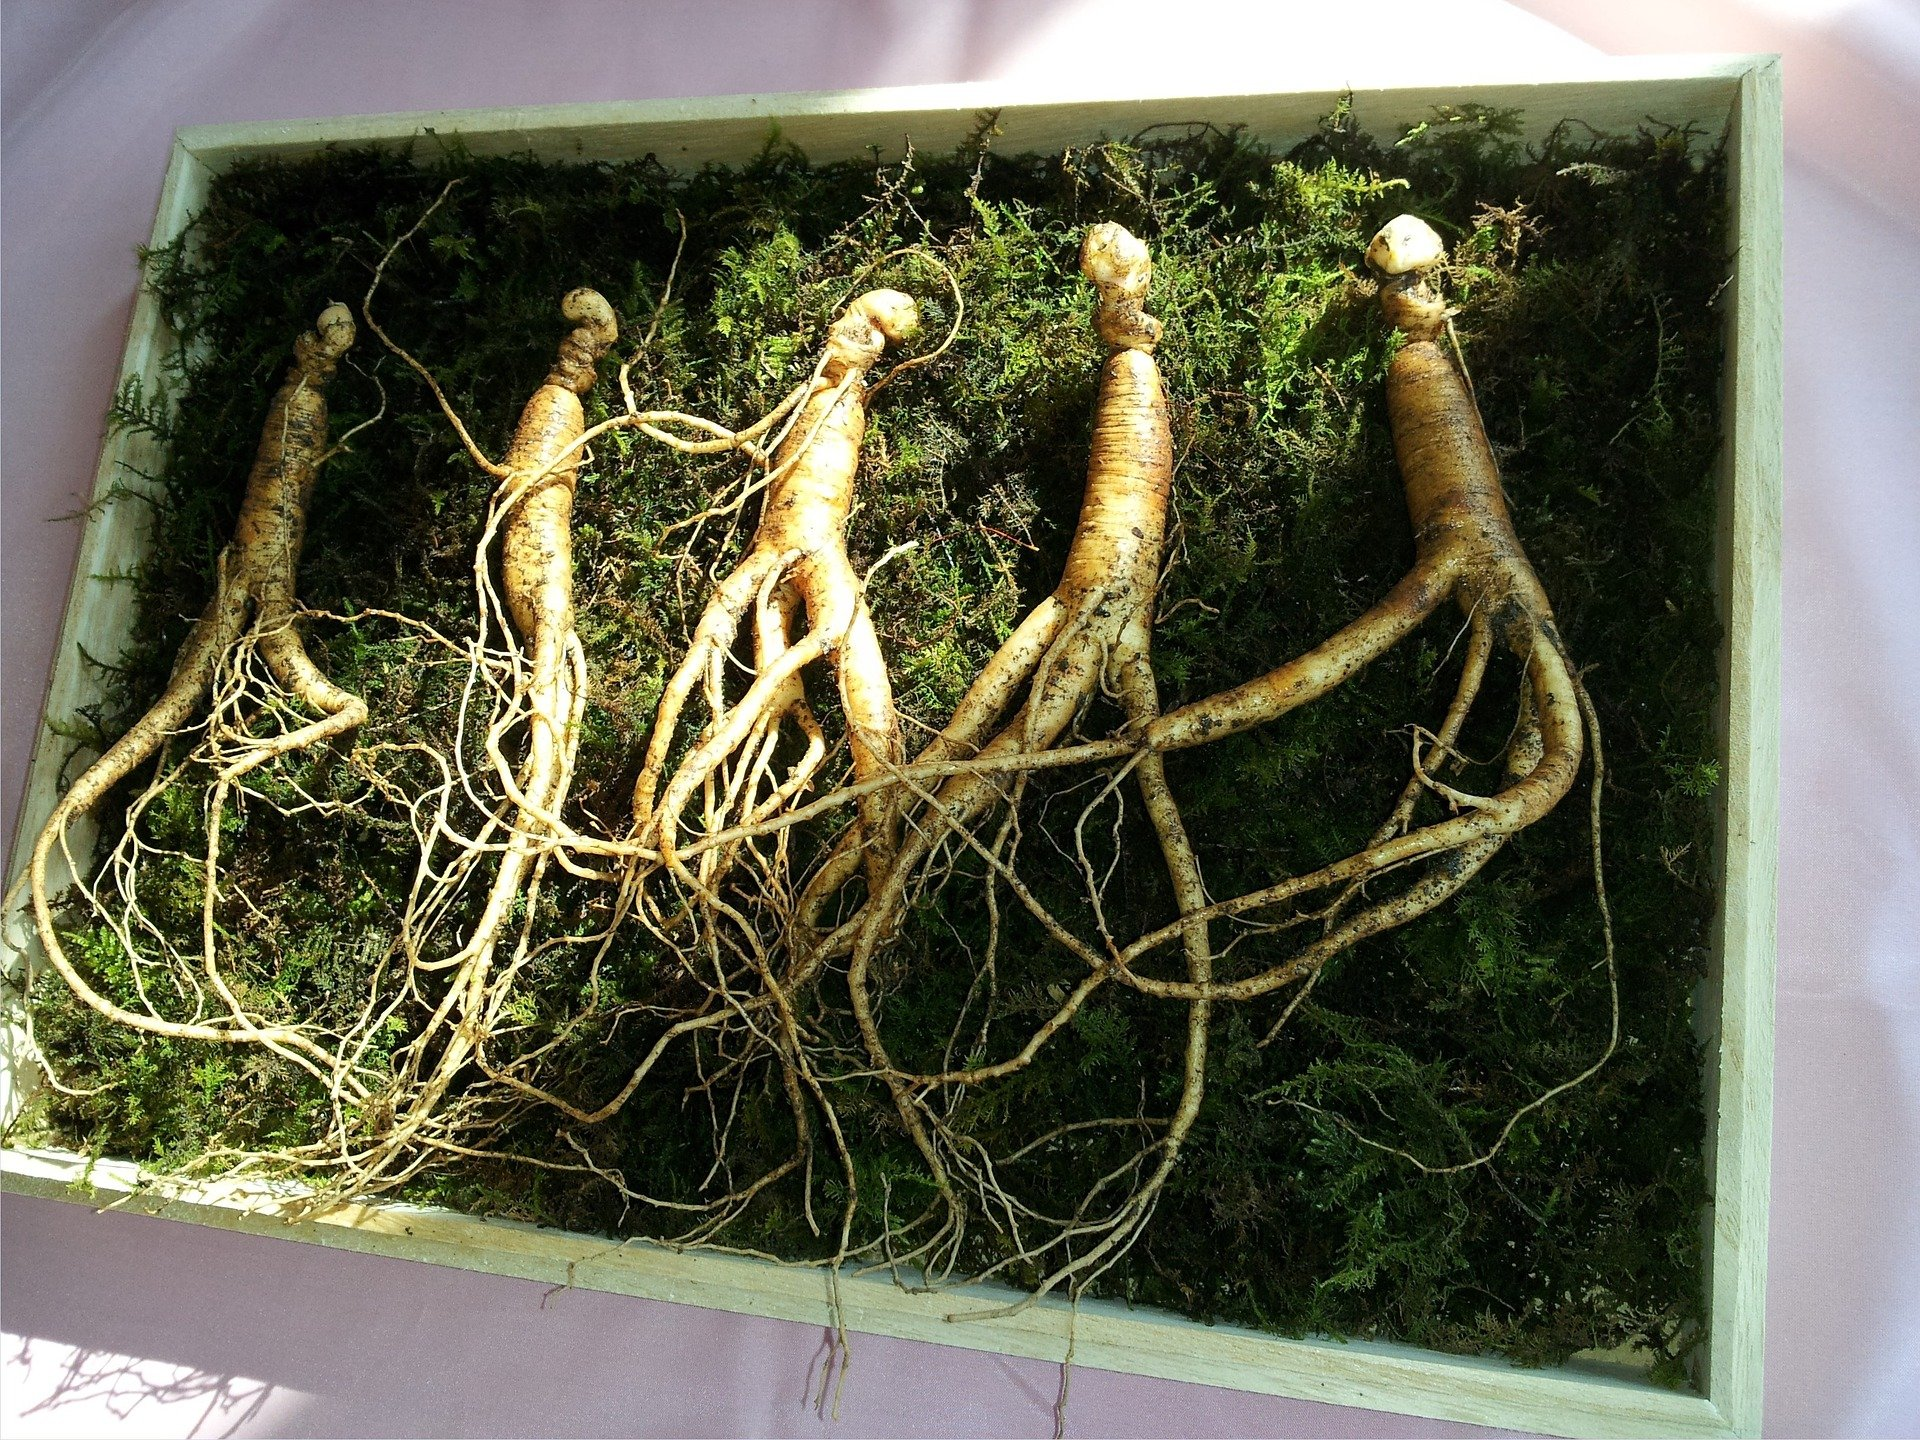 Korean red ginseng as herb supplement for adhd.